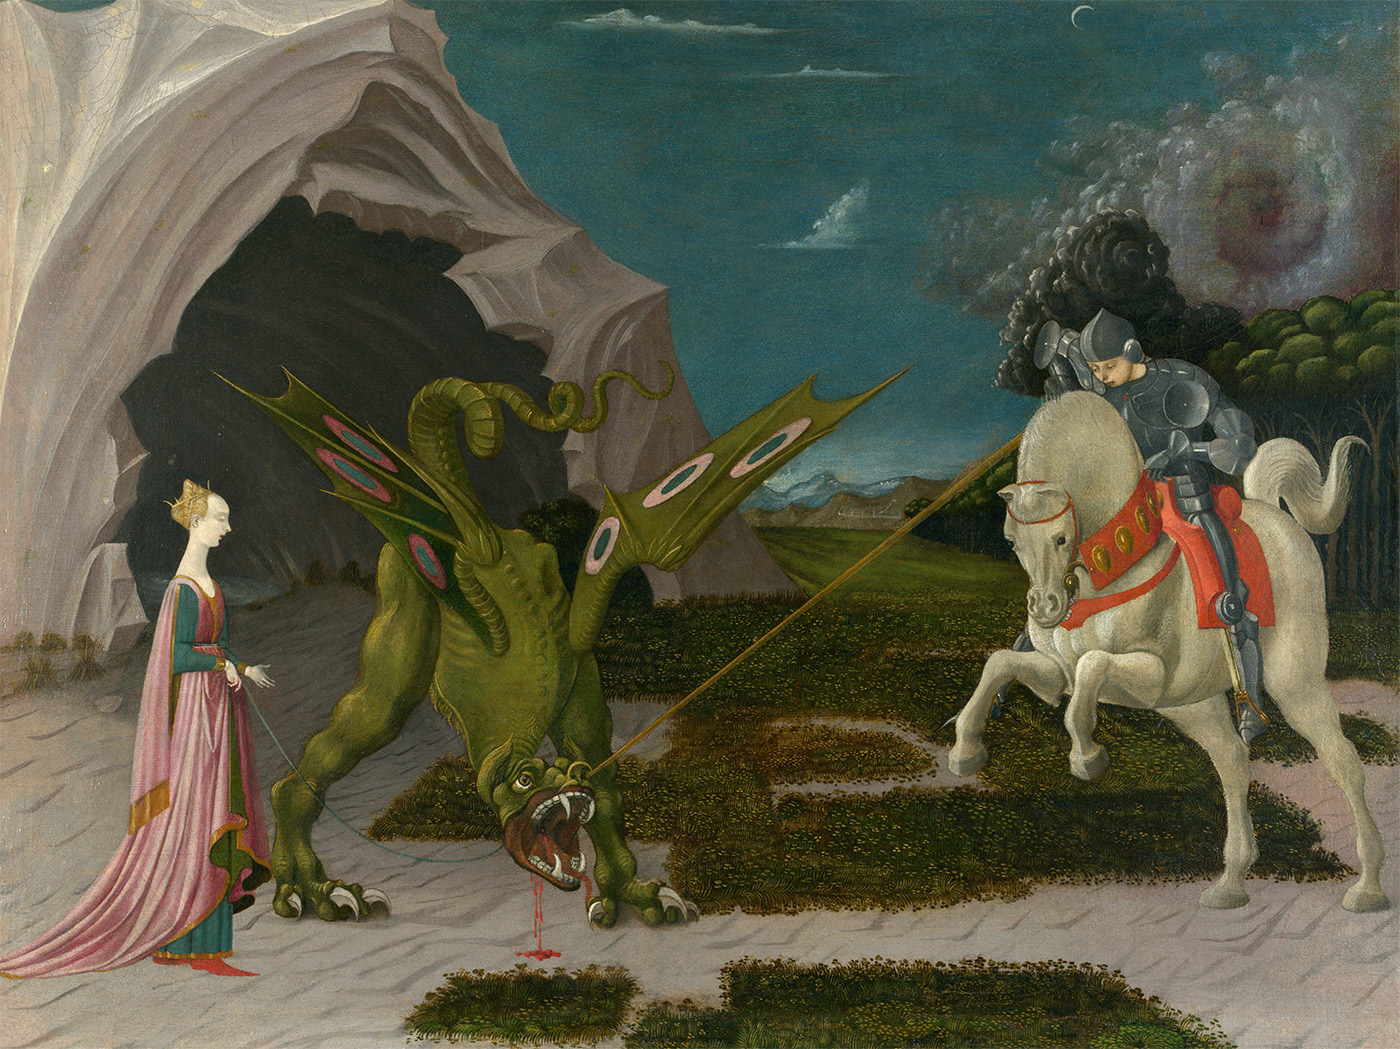 Saint George and the Dragon, by Paolo Uccello, c.1470.